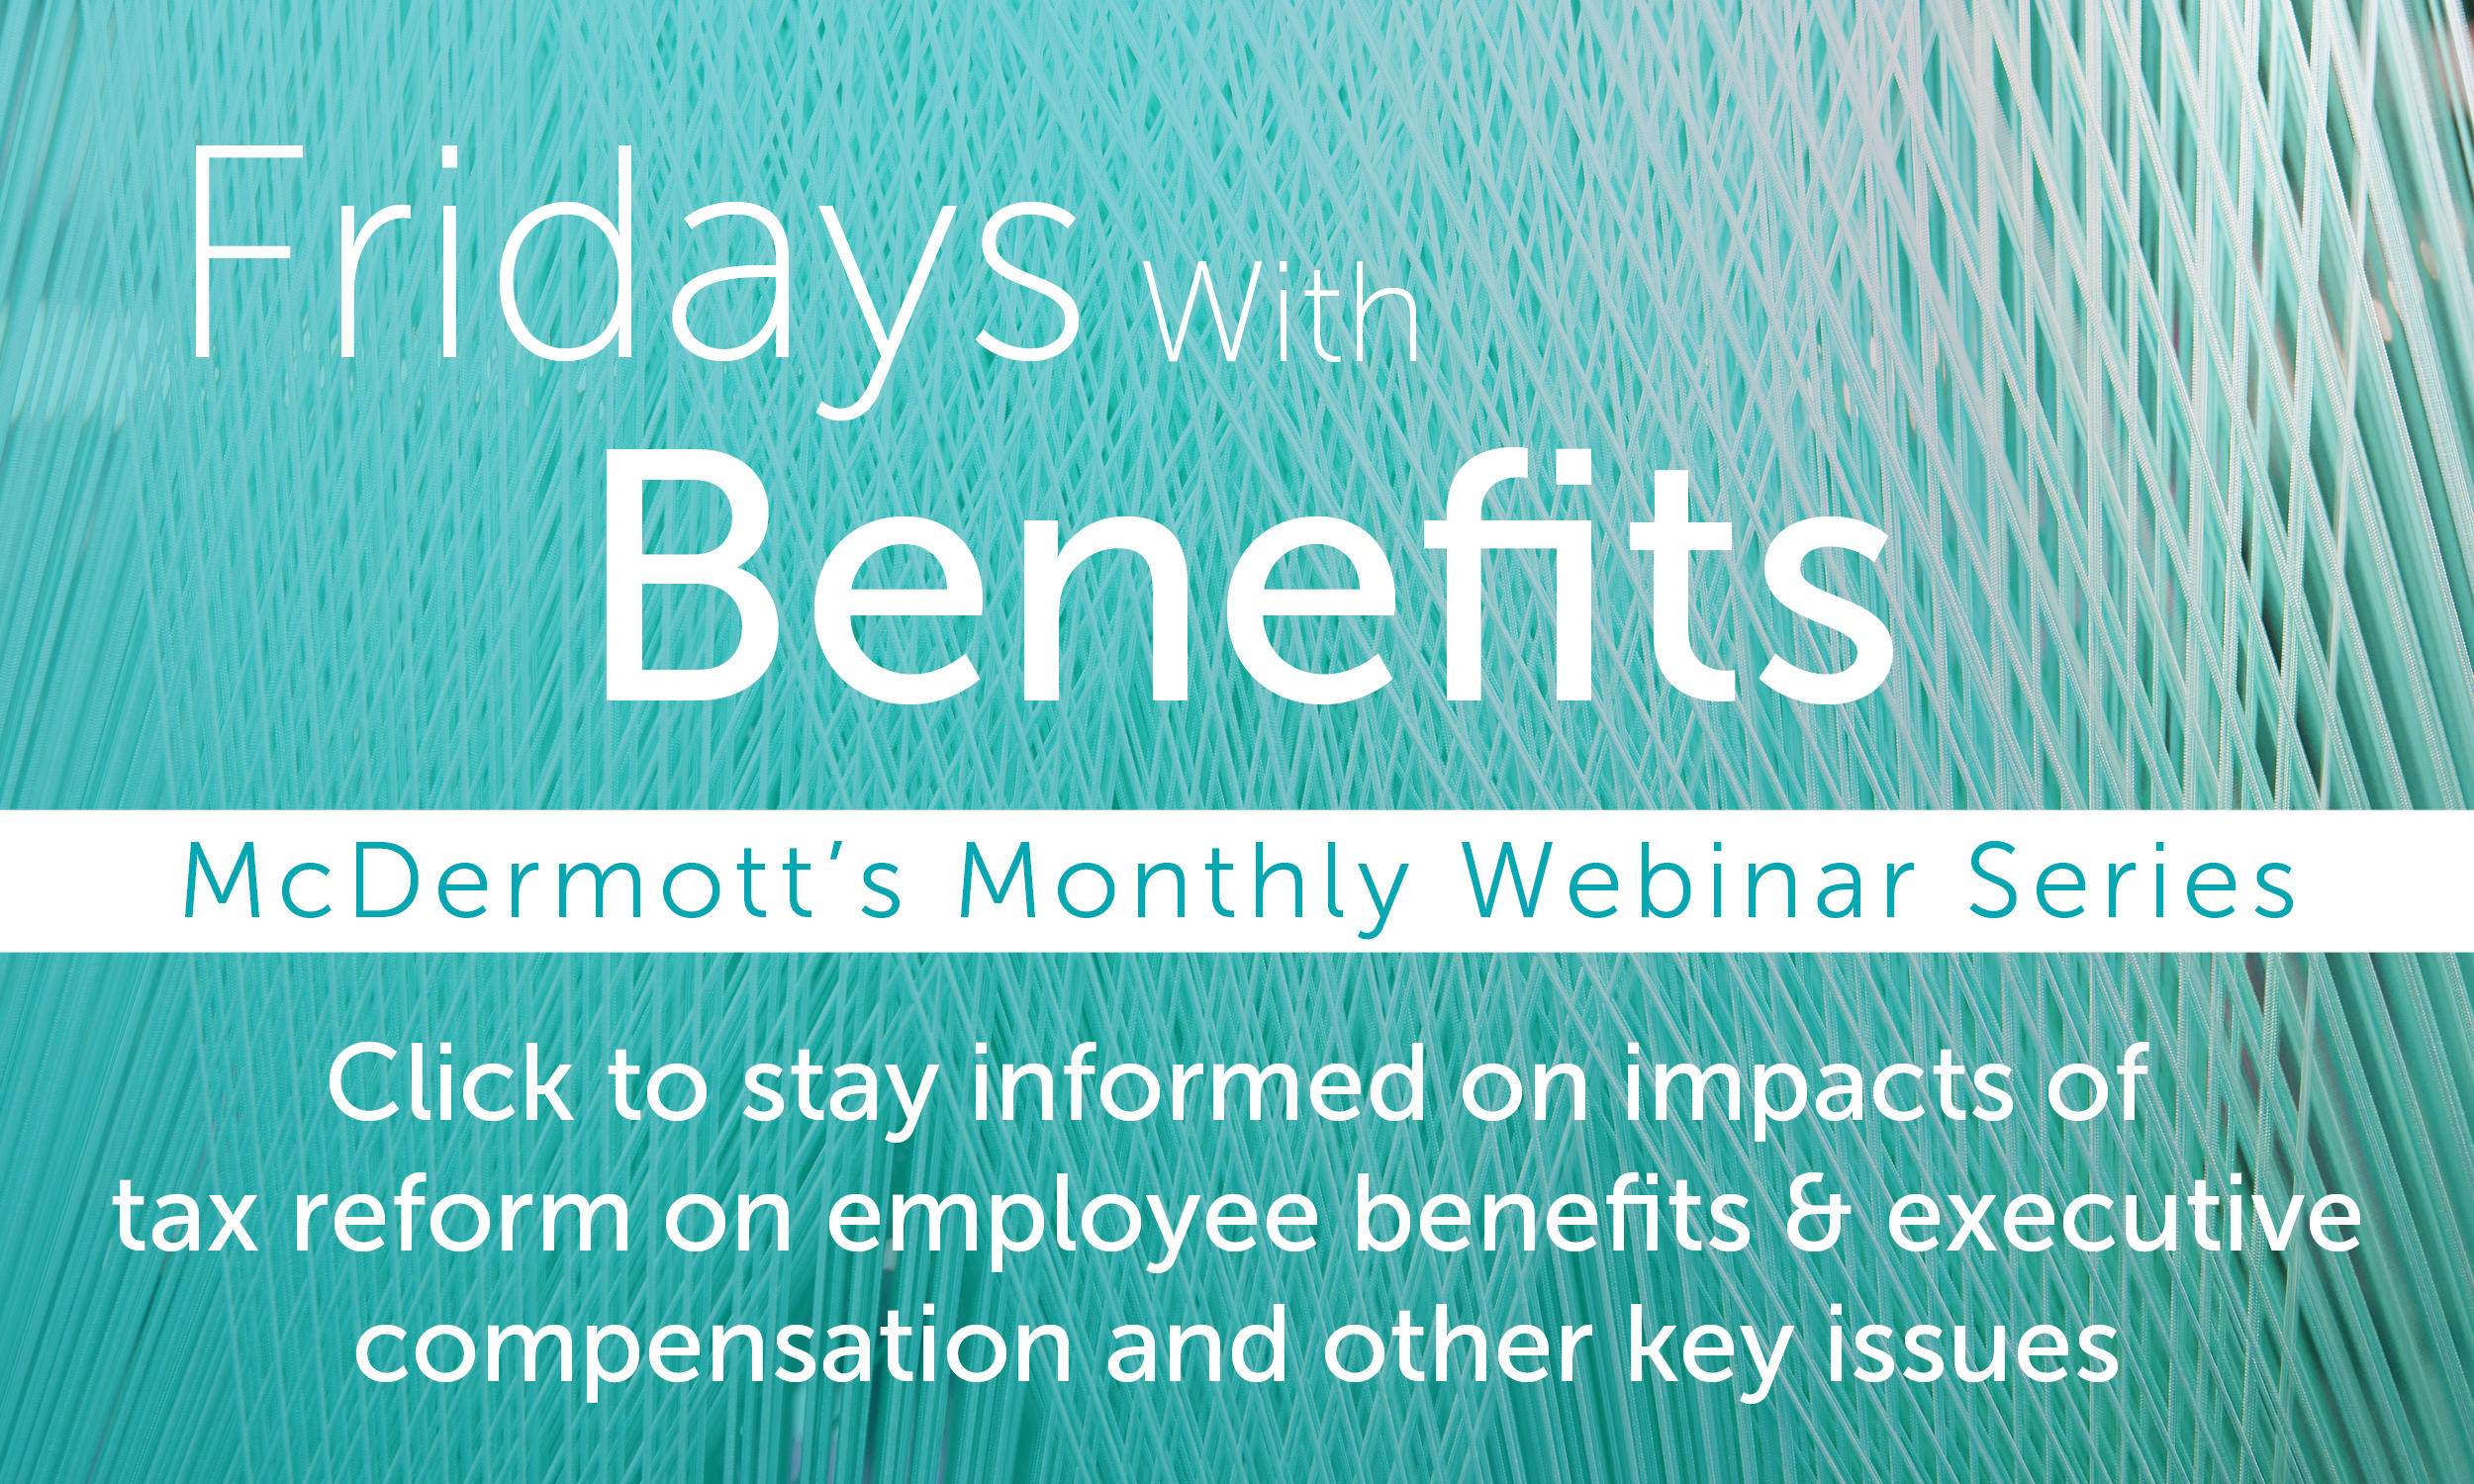 Fridays with Benefits Monthly Webinar Series